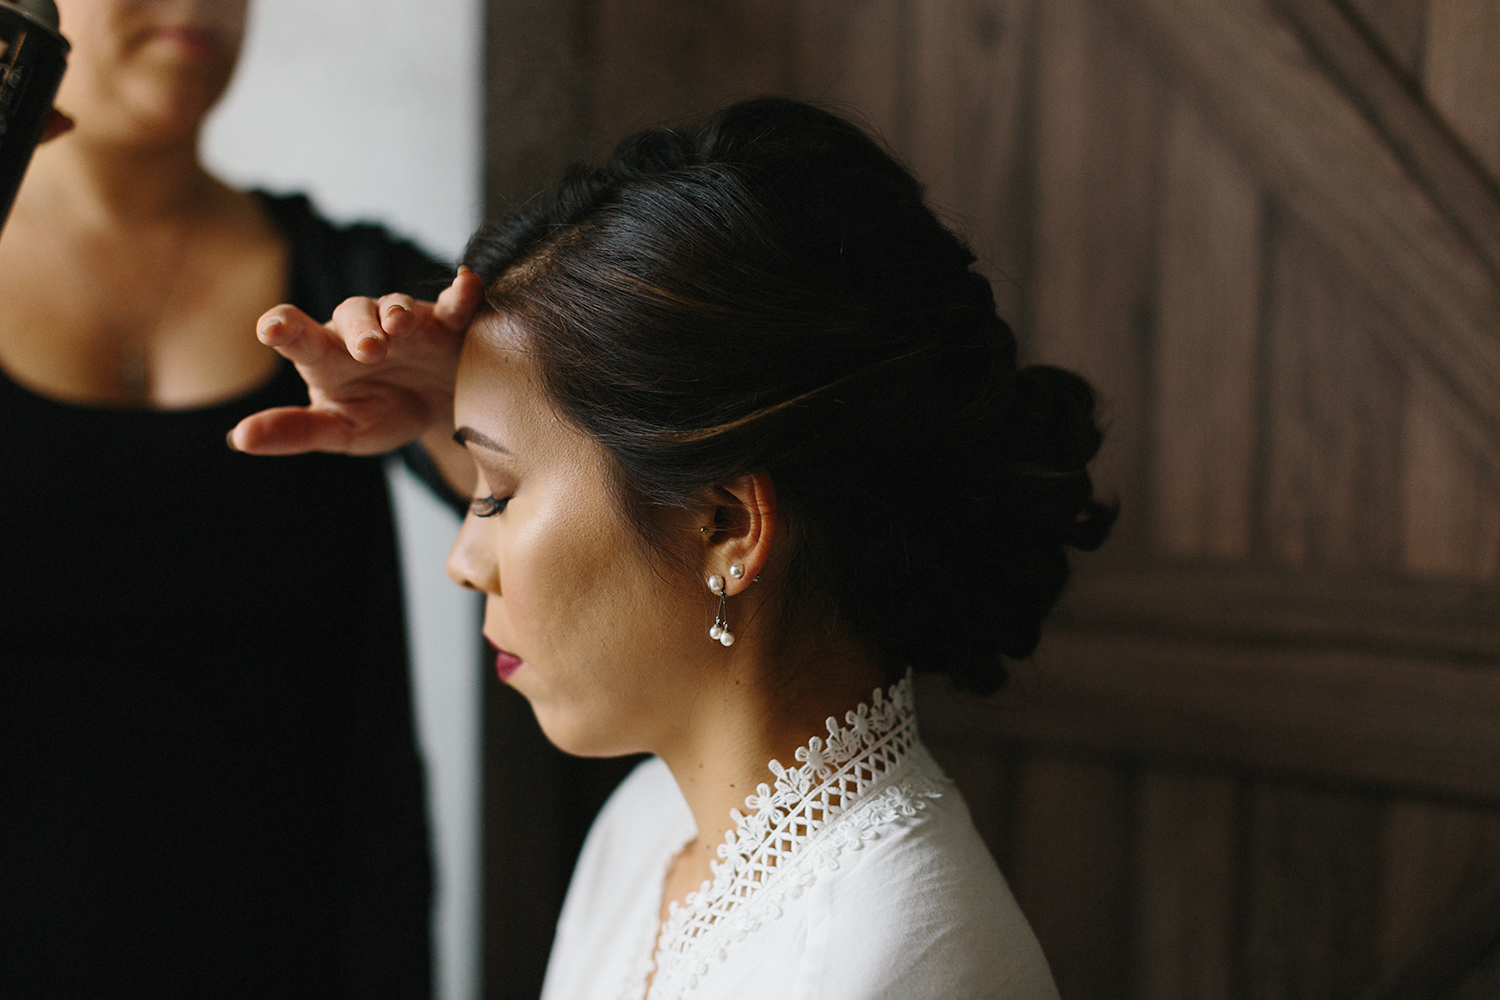 bride-getting-makeup-done-in-white-bridal-robe-